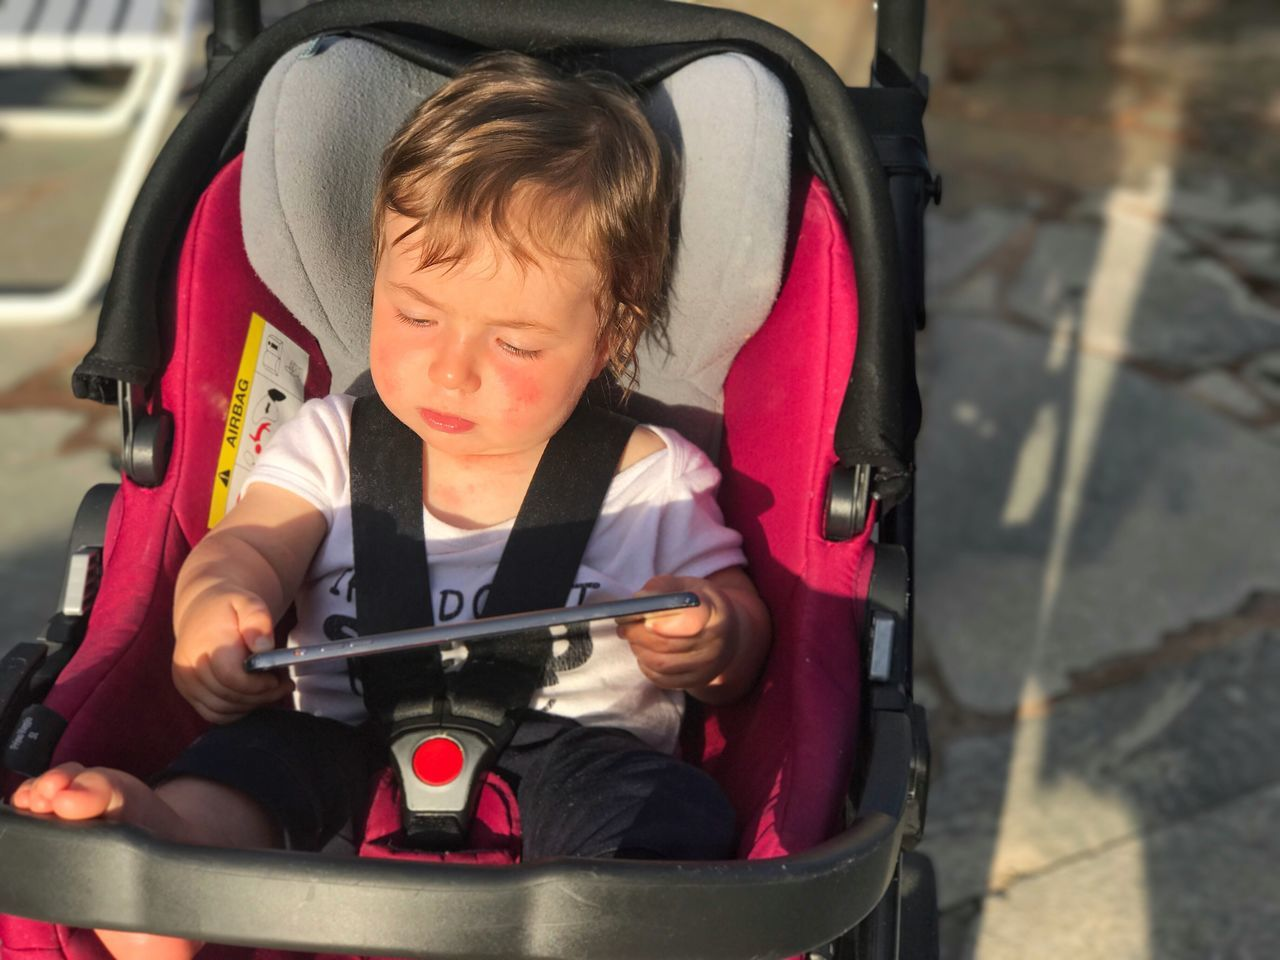 Baby With Digital Tablet In Stroller